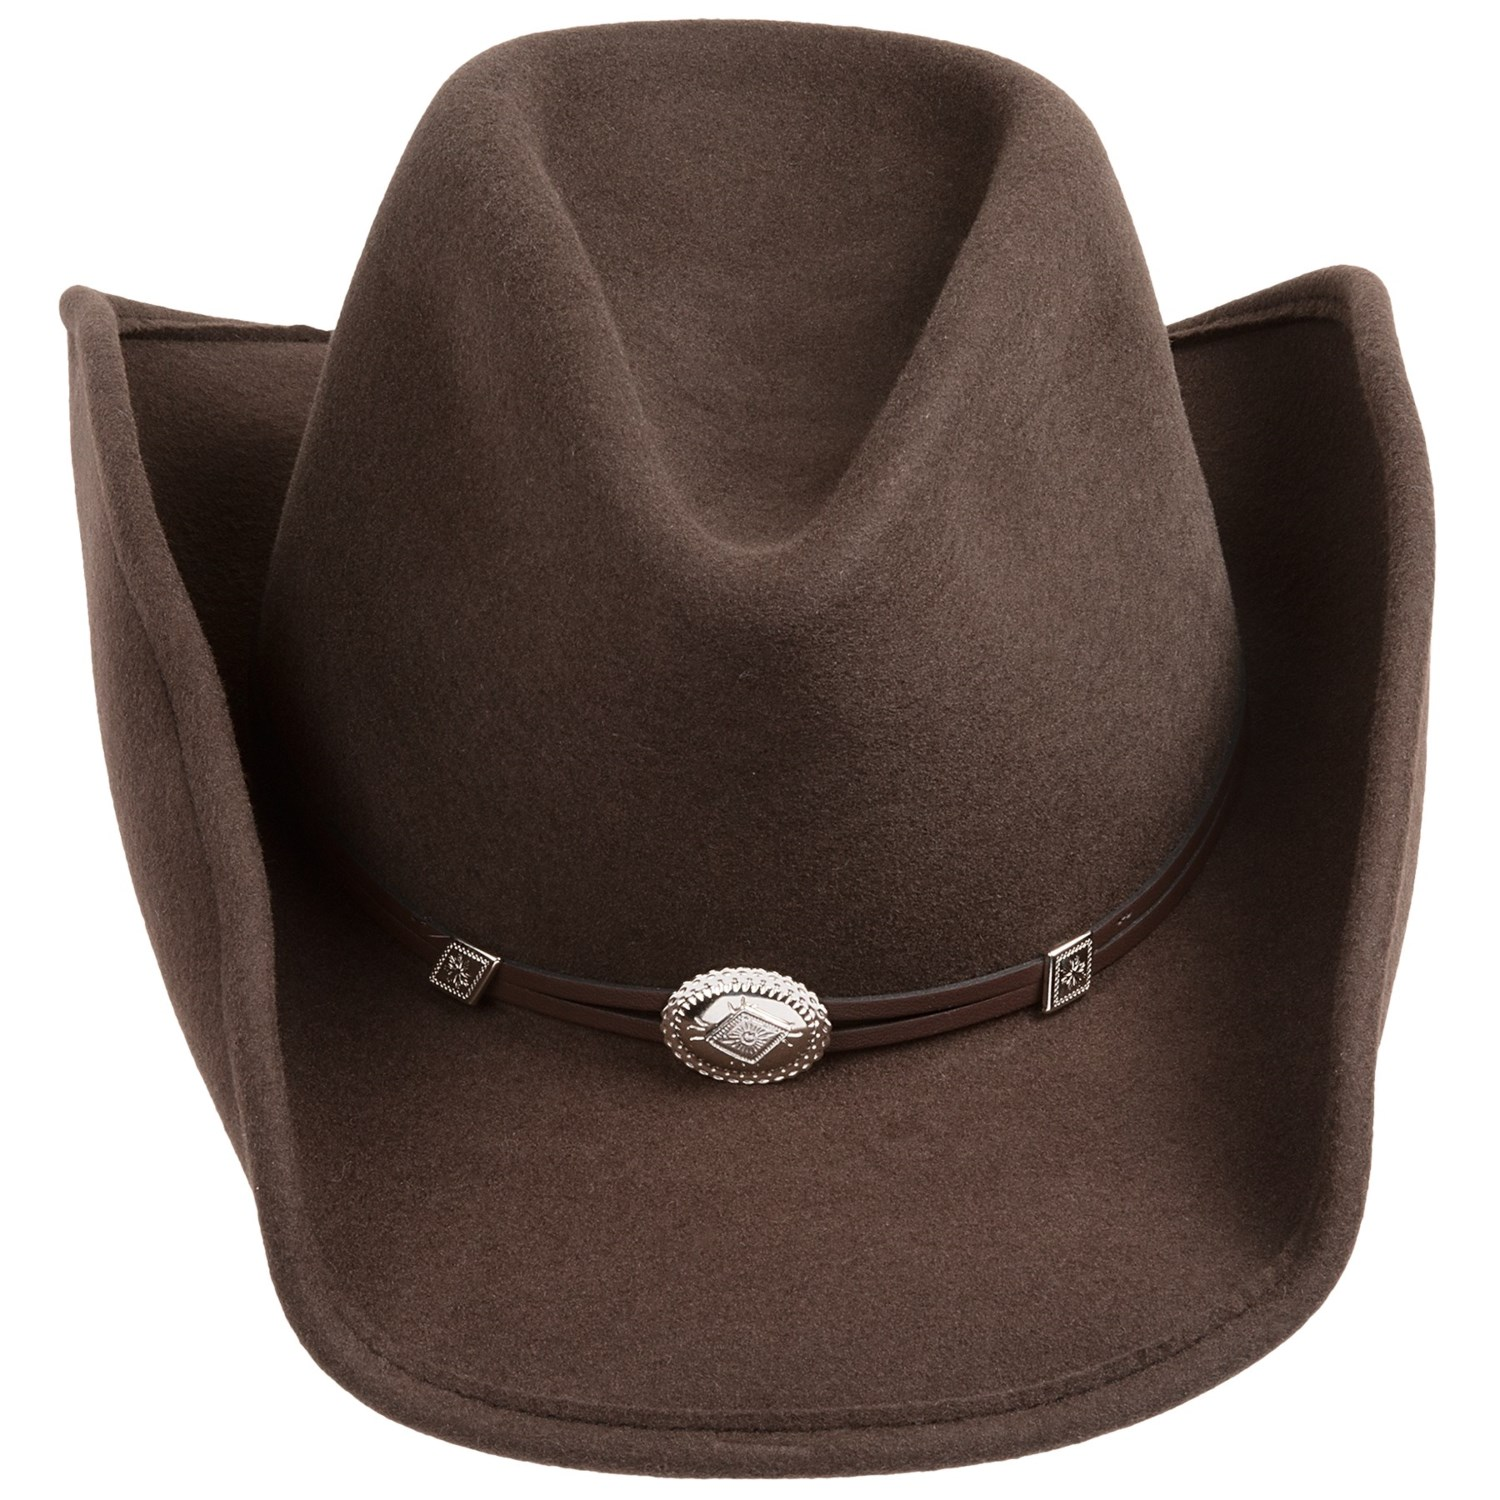 6ec3fa2516ac0 Bailey Day Money Cowboy Hat Felt Cowboy Hats For Men  Stetson Felt Hats For  Men